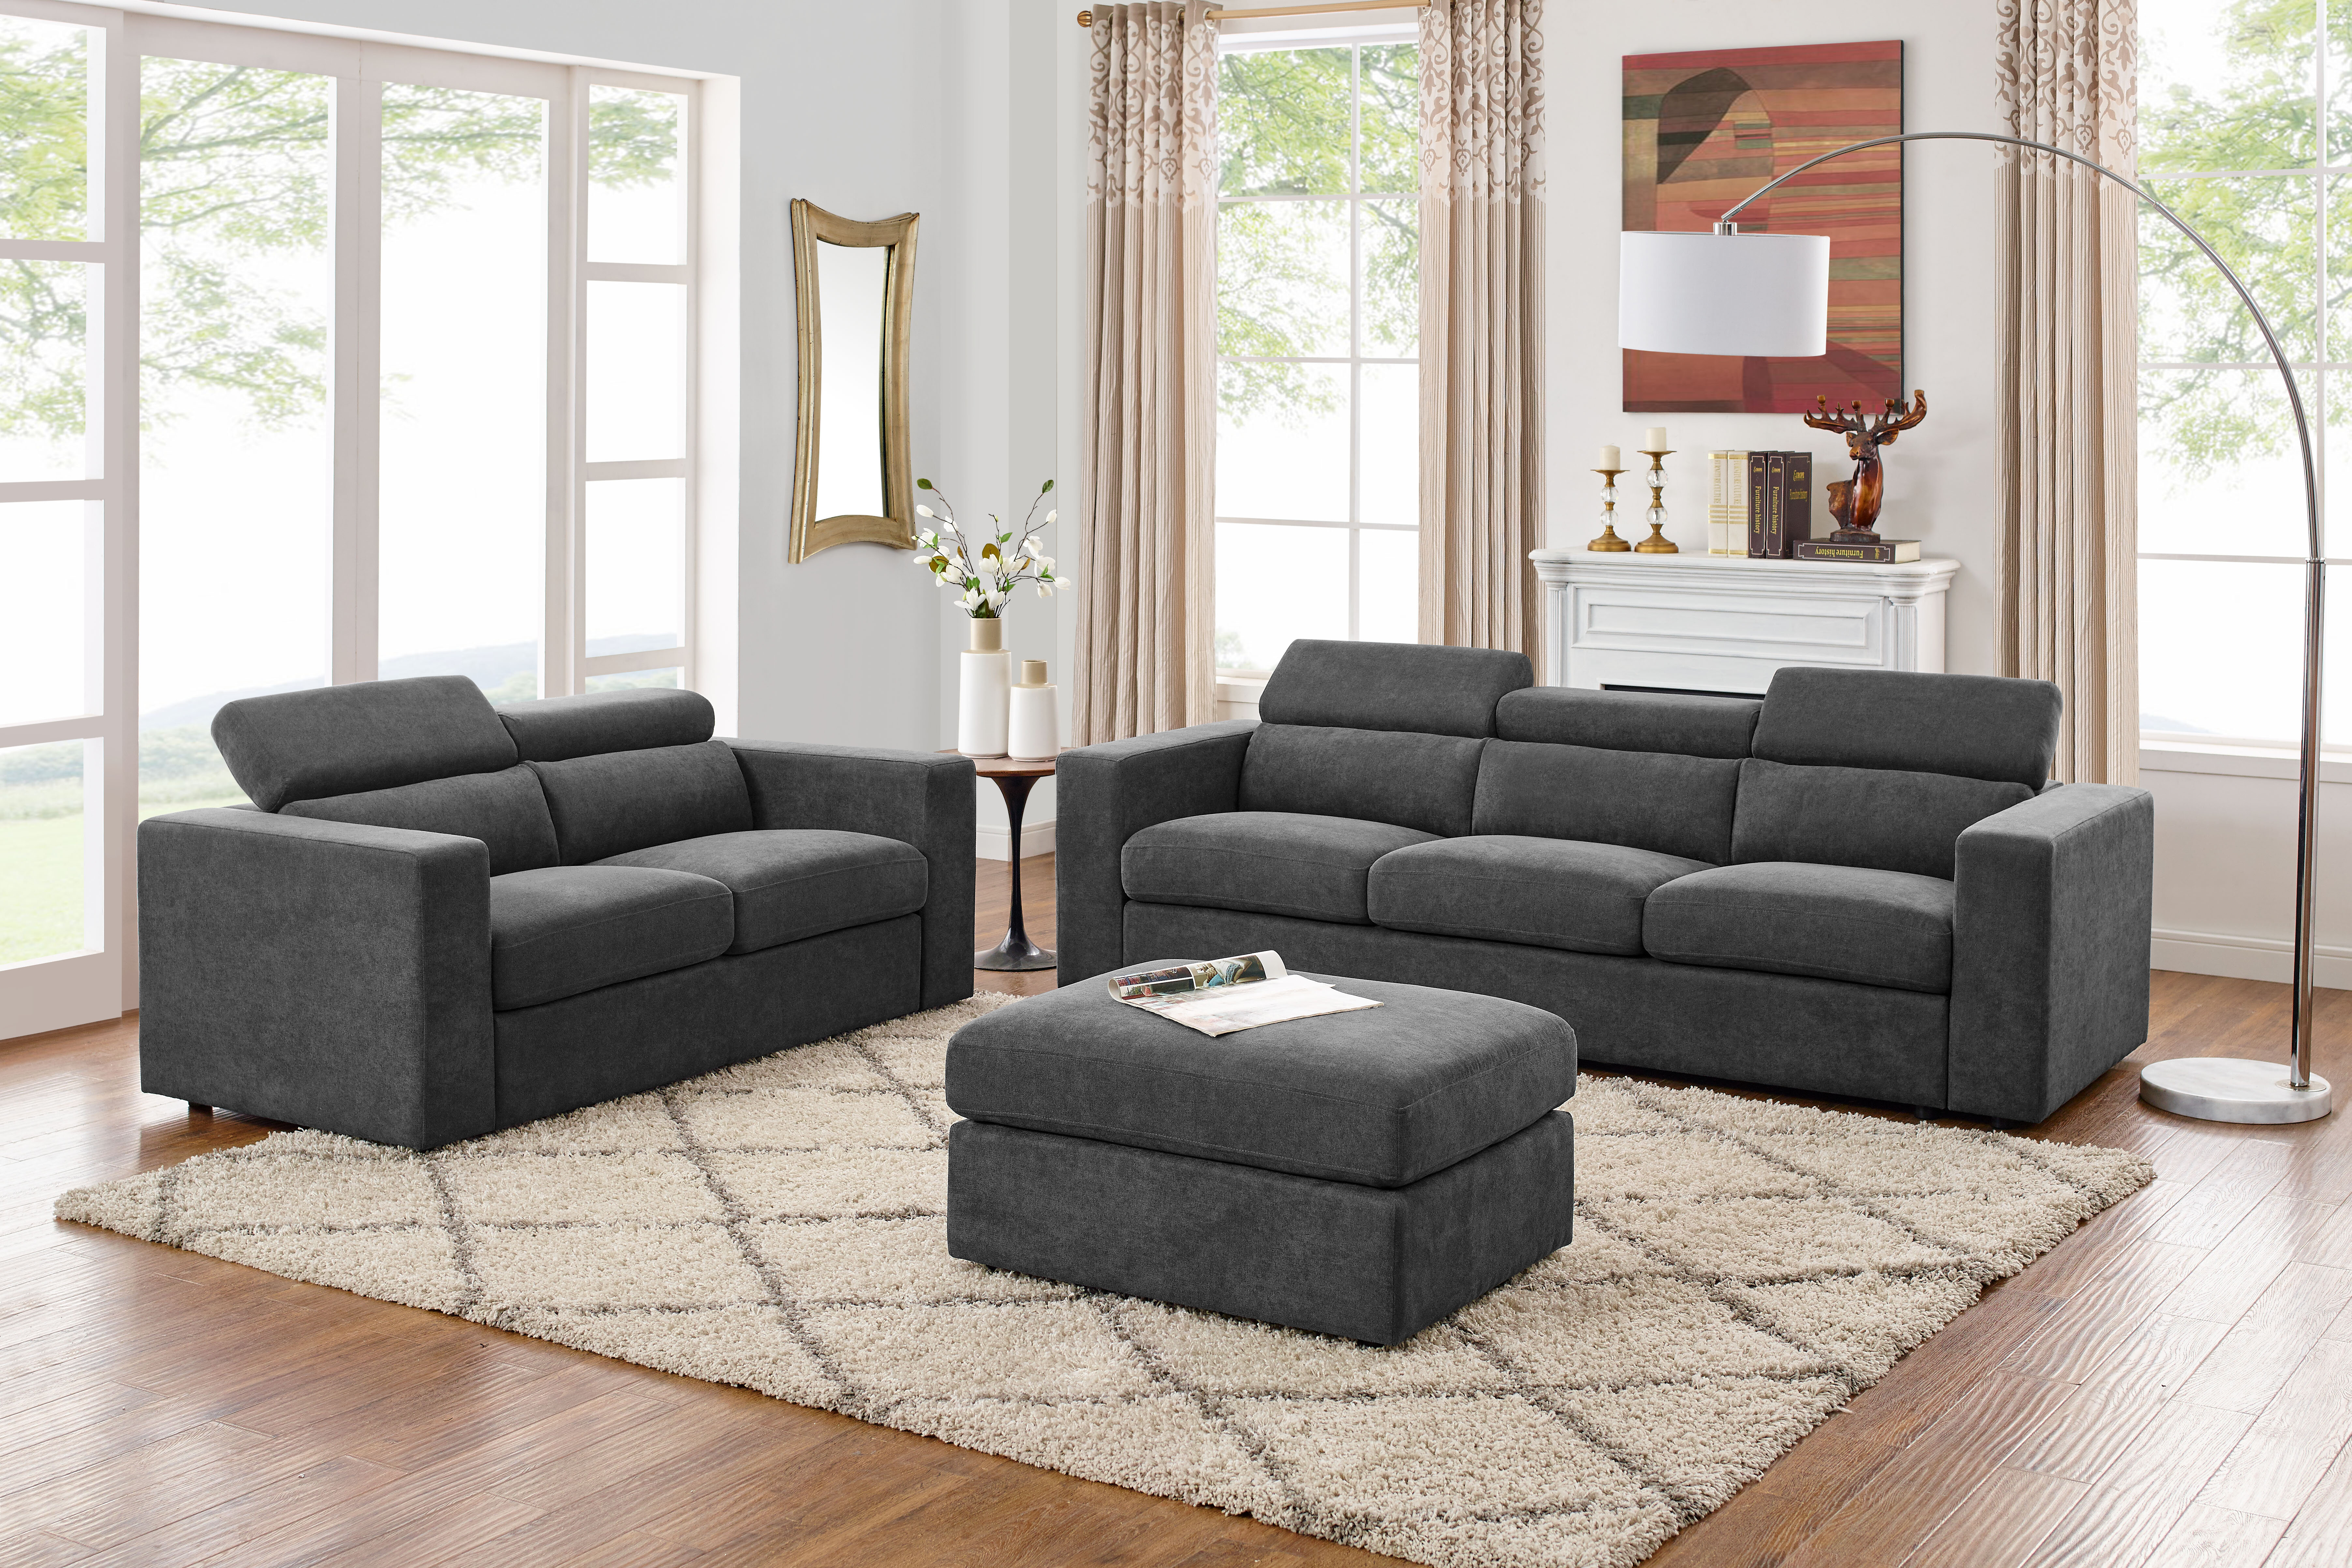 Fowlerville 5 Seater Sectional Sofa With Ottoman